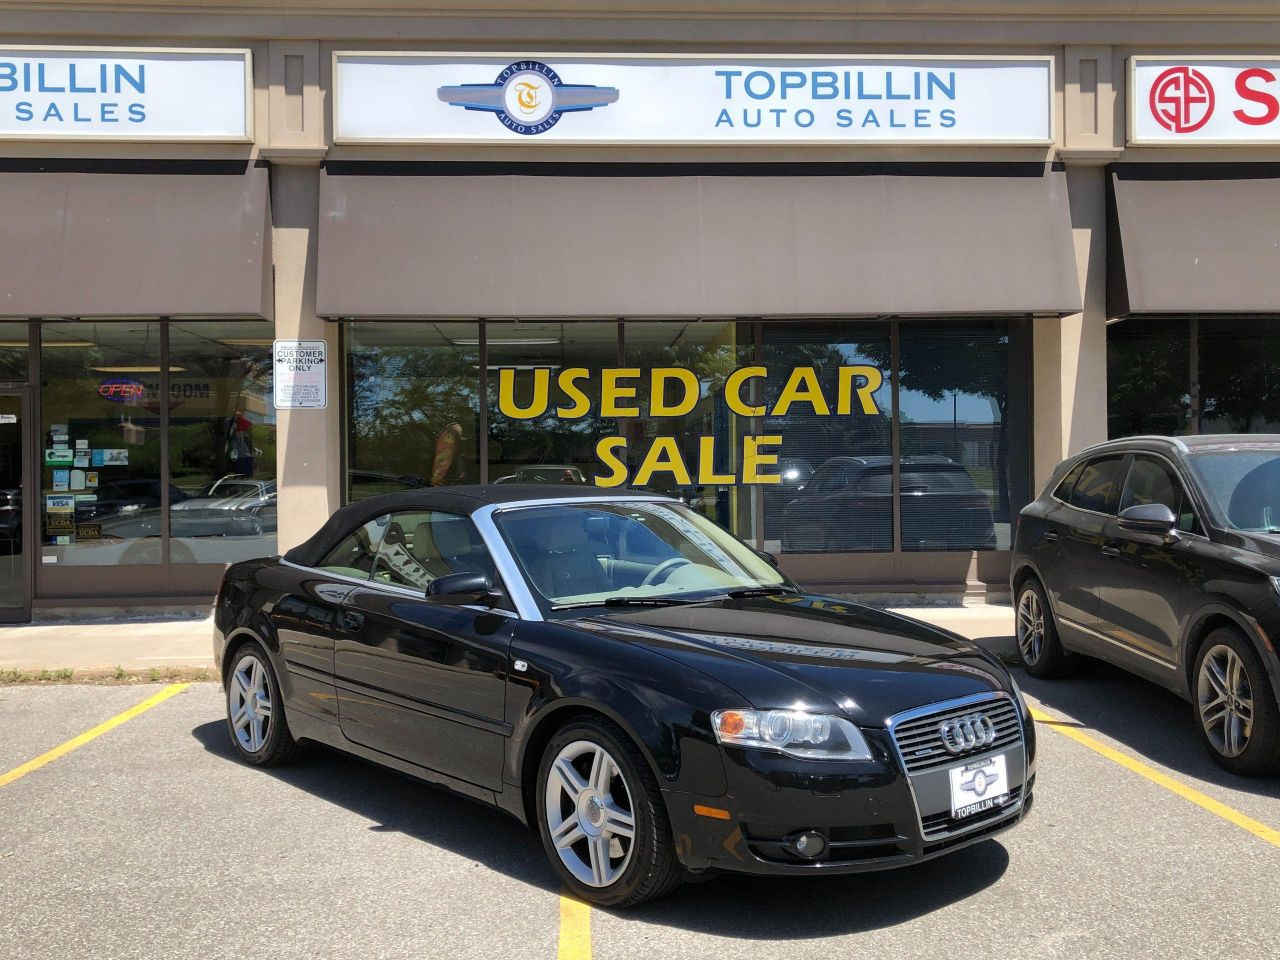 2007 Audi A4 2.0T Convertible, 2 Years Warranty